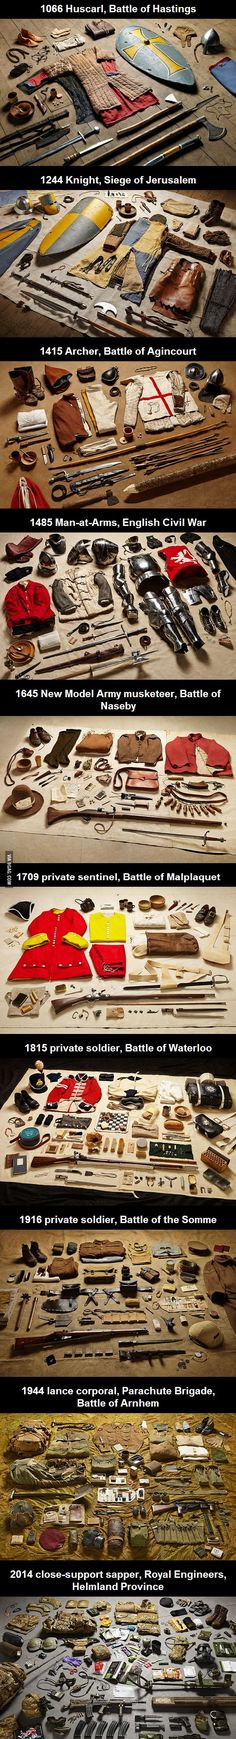 Historical Military Uniforms from the last 1,000 years.